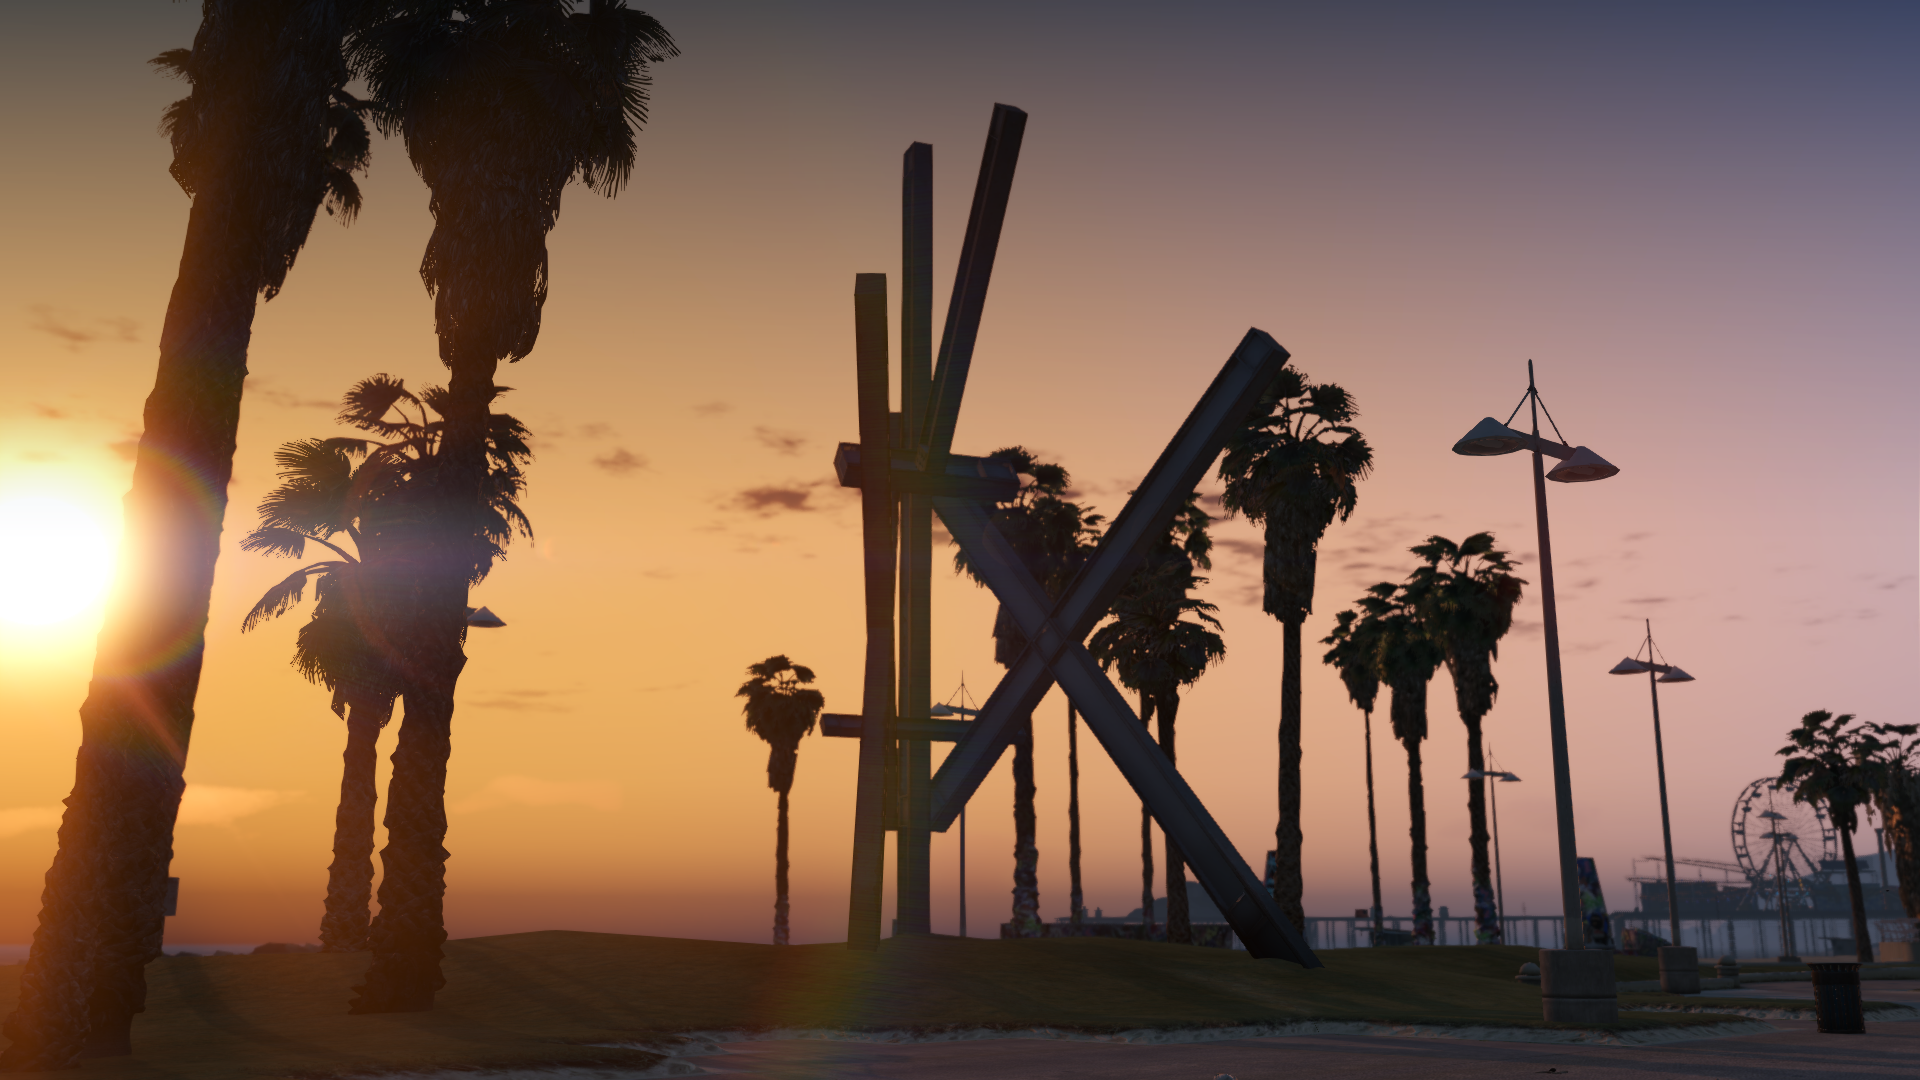 Vespucci Beach Sculpture 1.0